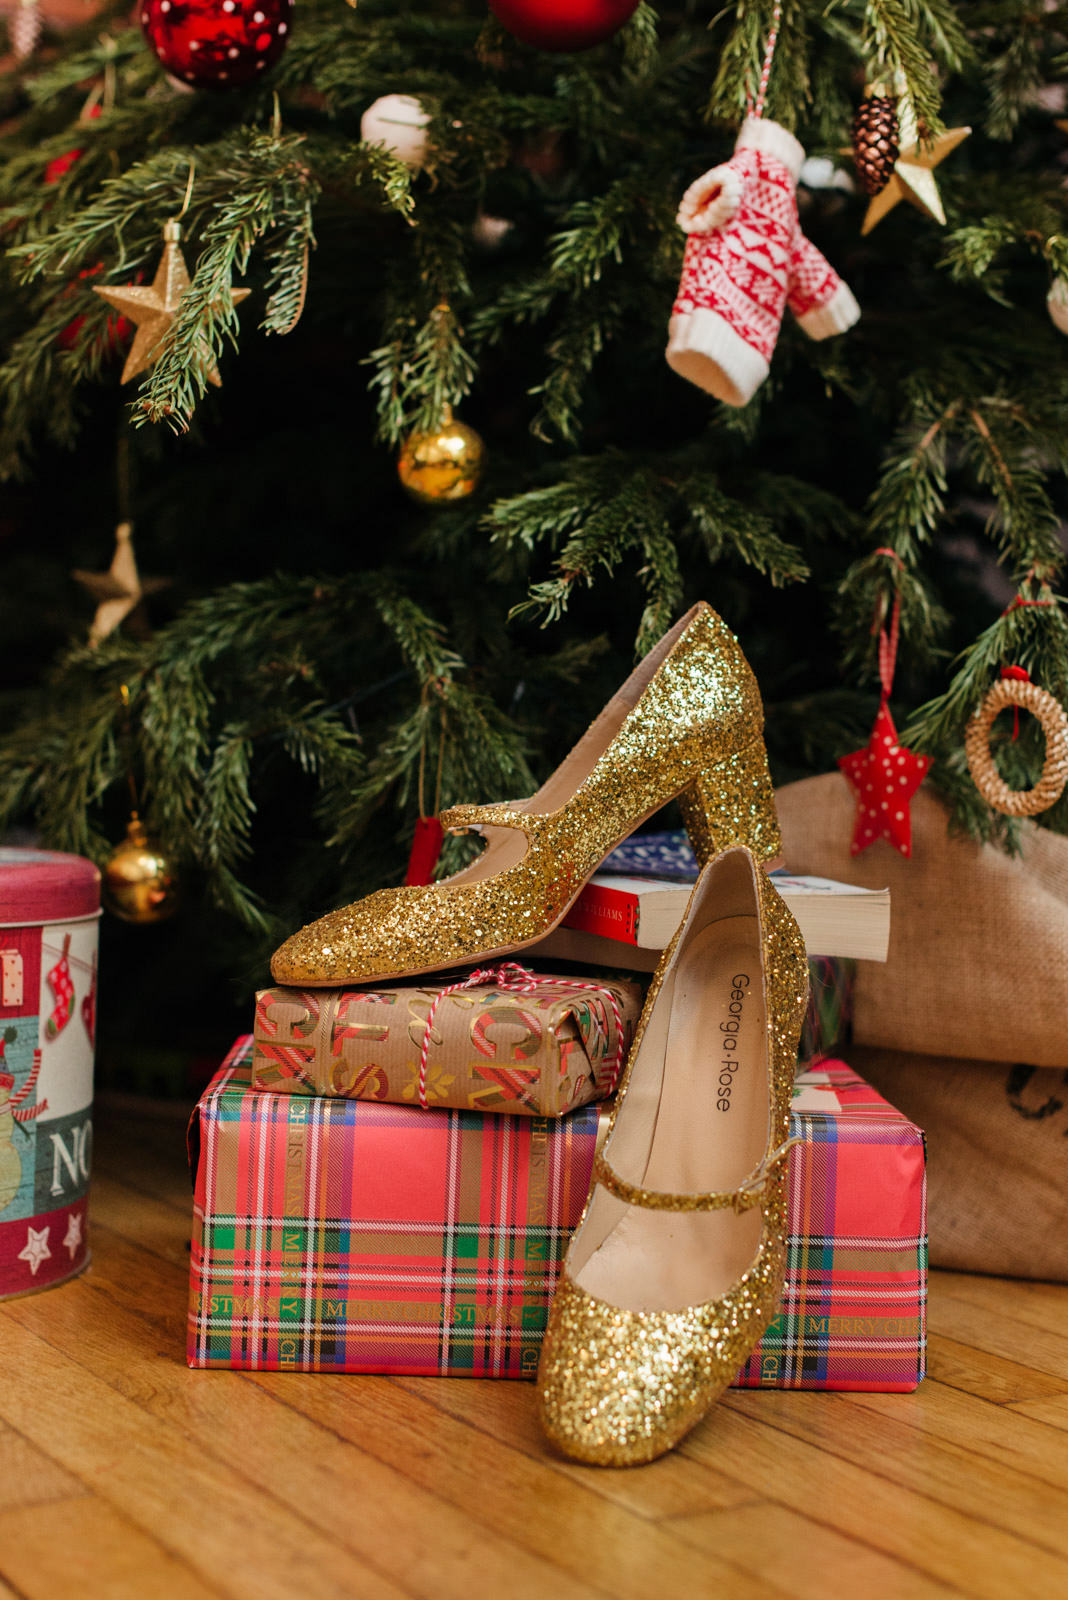 Blog-Mode-And-The-City-Lifestyle-Christmas-Party-2016-chaussures-sarenza-georgia-rose